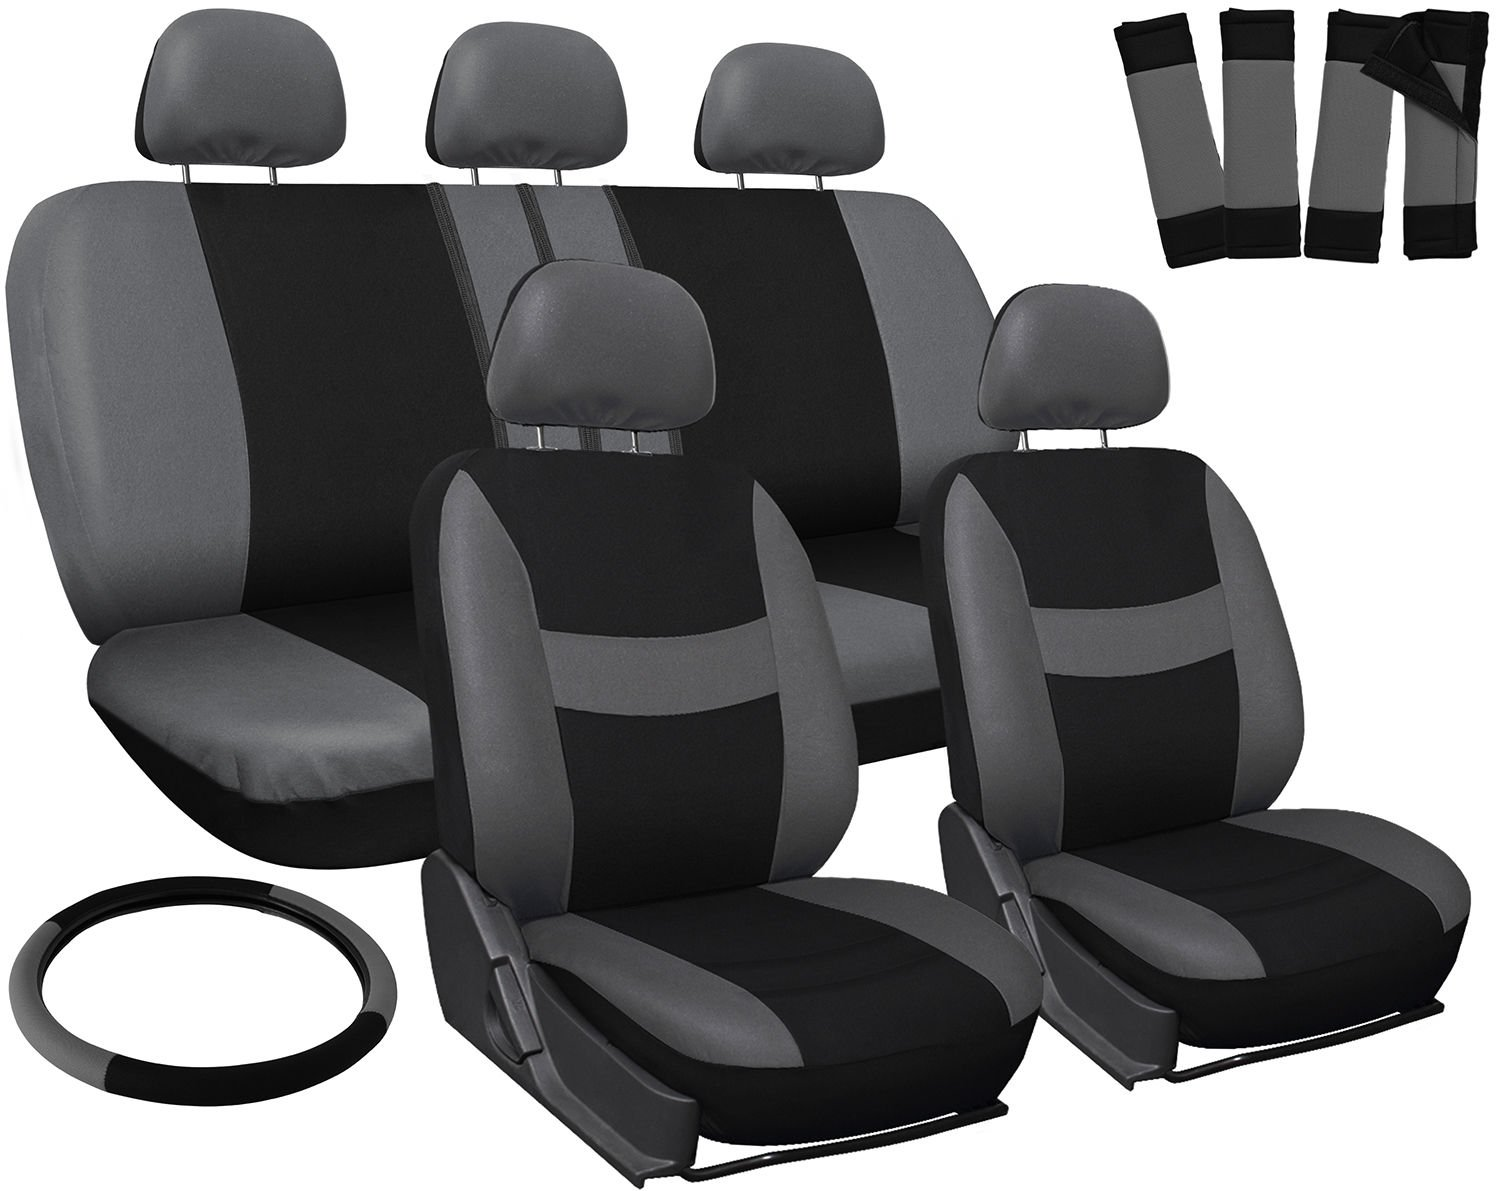 New Car Seat Covers for Toyota Corolla Gray Black Steering Wheel-Belt Pad-Head Rests